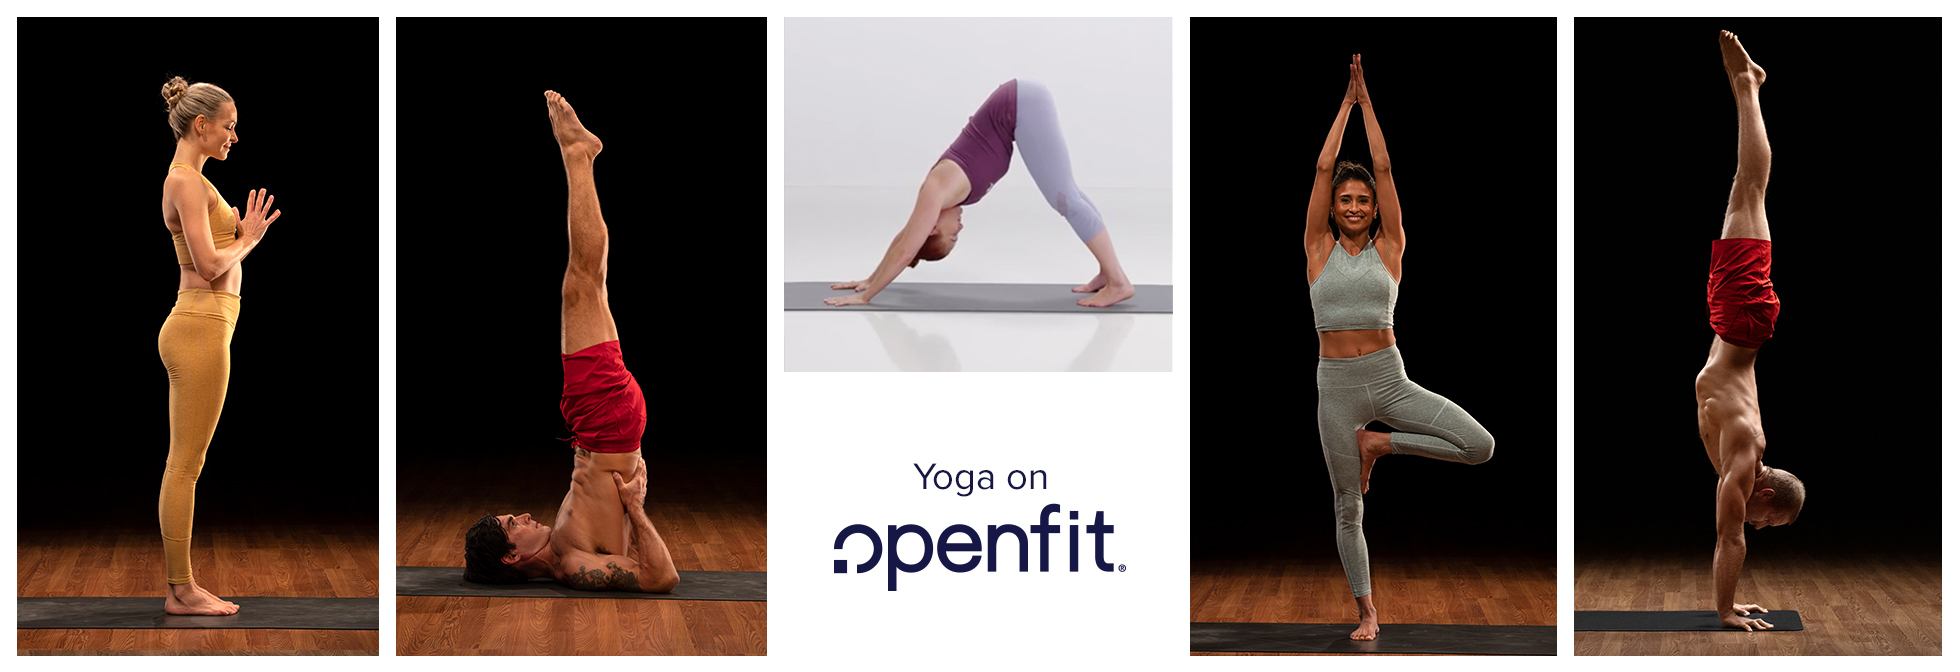 Openfit Yoga Guide